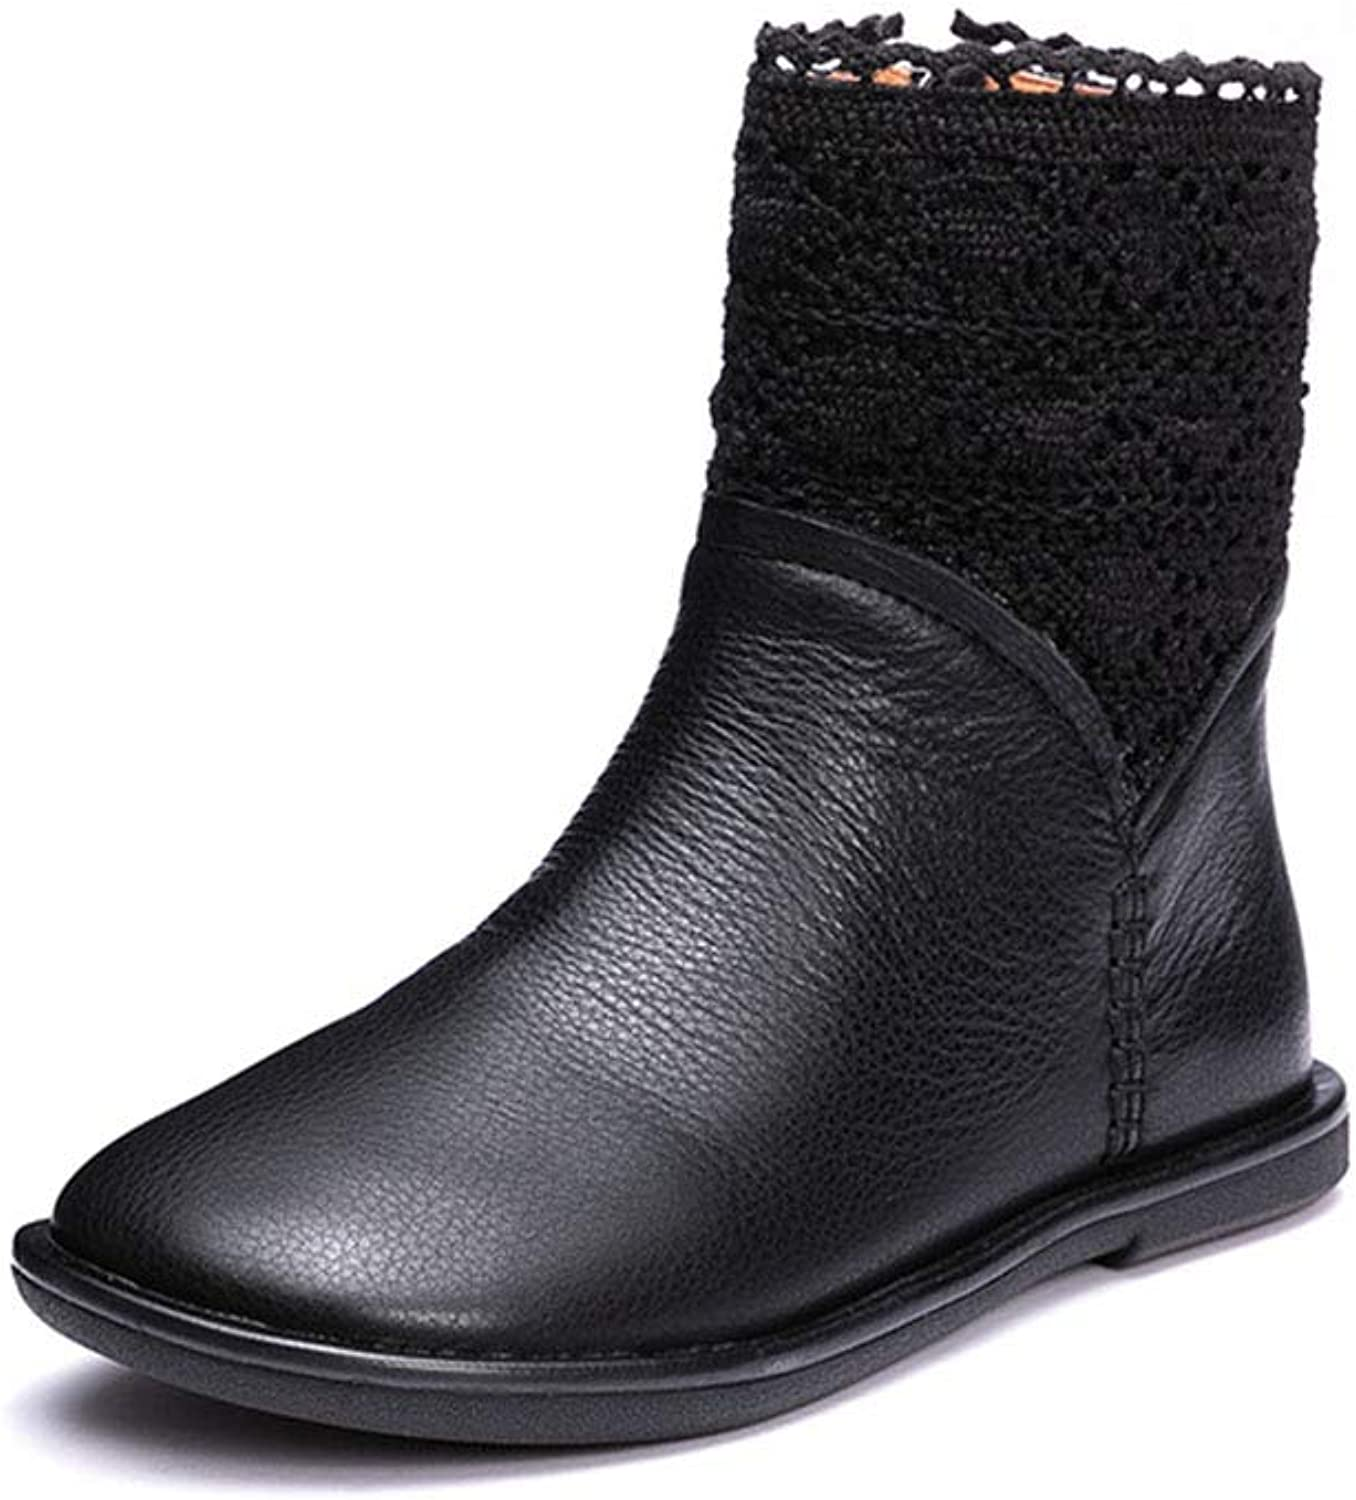 Women's Booties, Flat Fashion Knit Splice Leather Booties Fall Winter Round Head Ladies Flat Heel Martin Boots (color   A, Size   39)